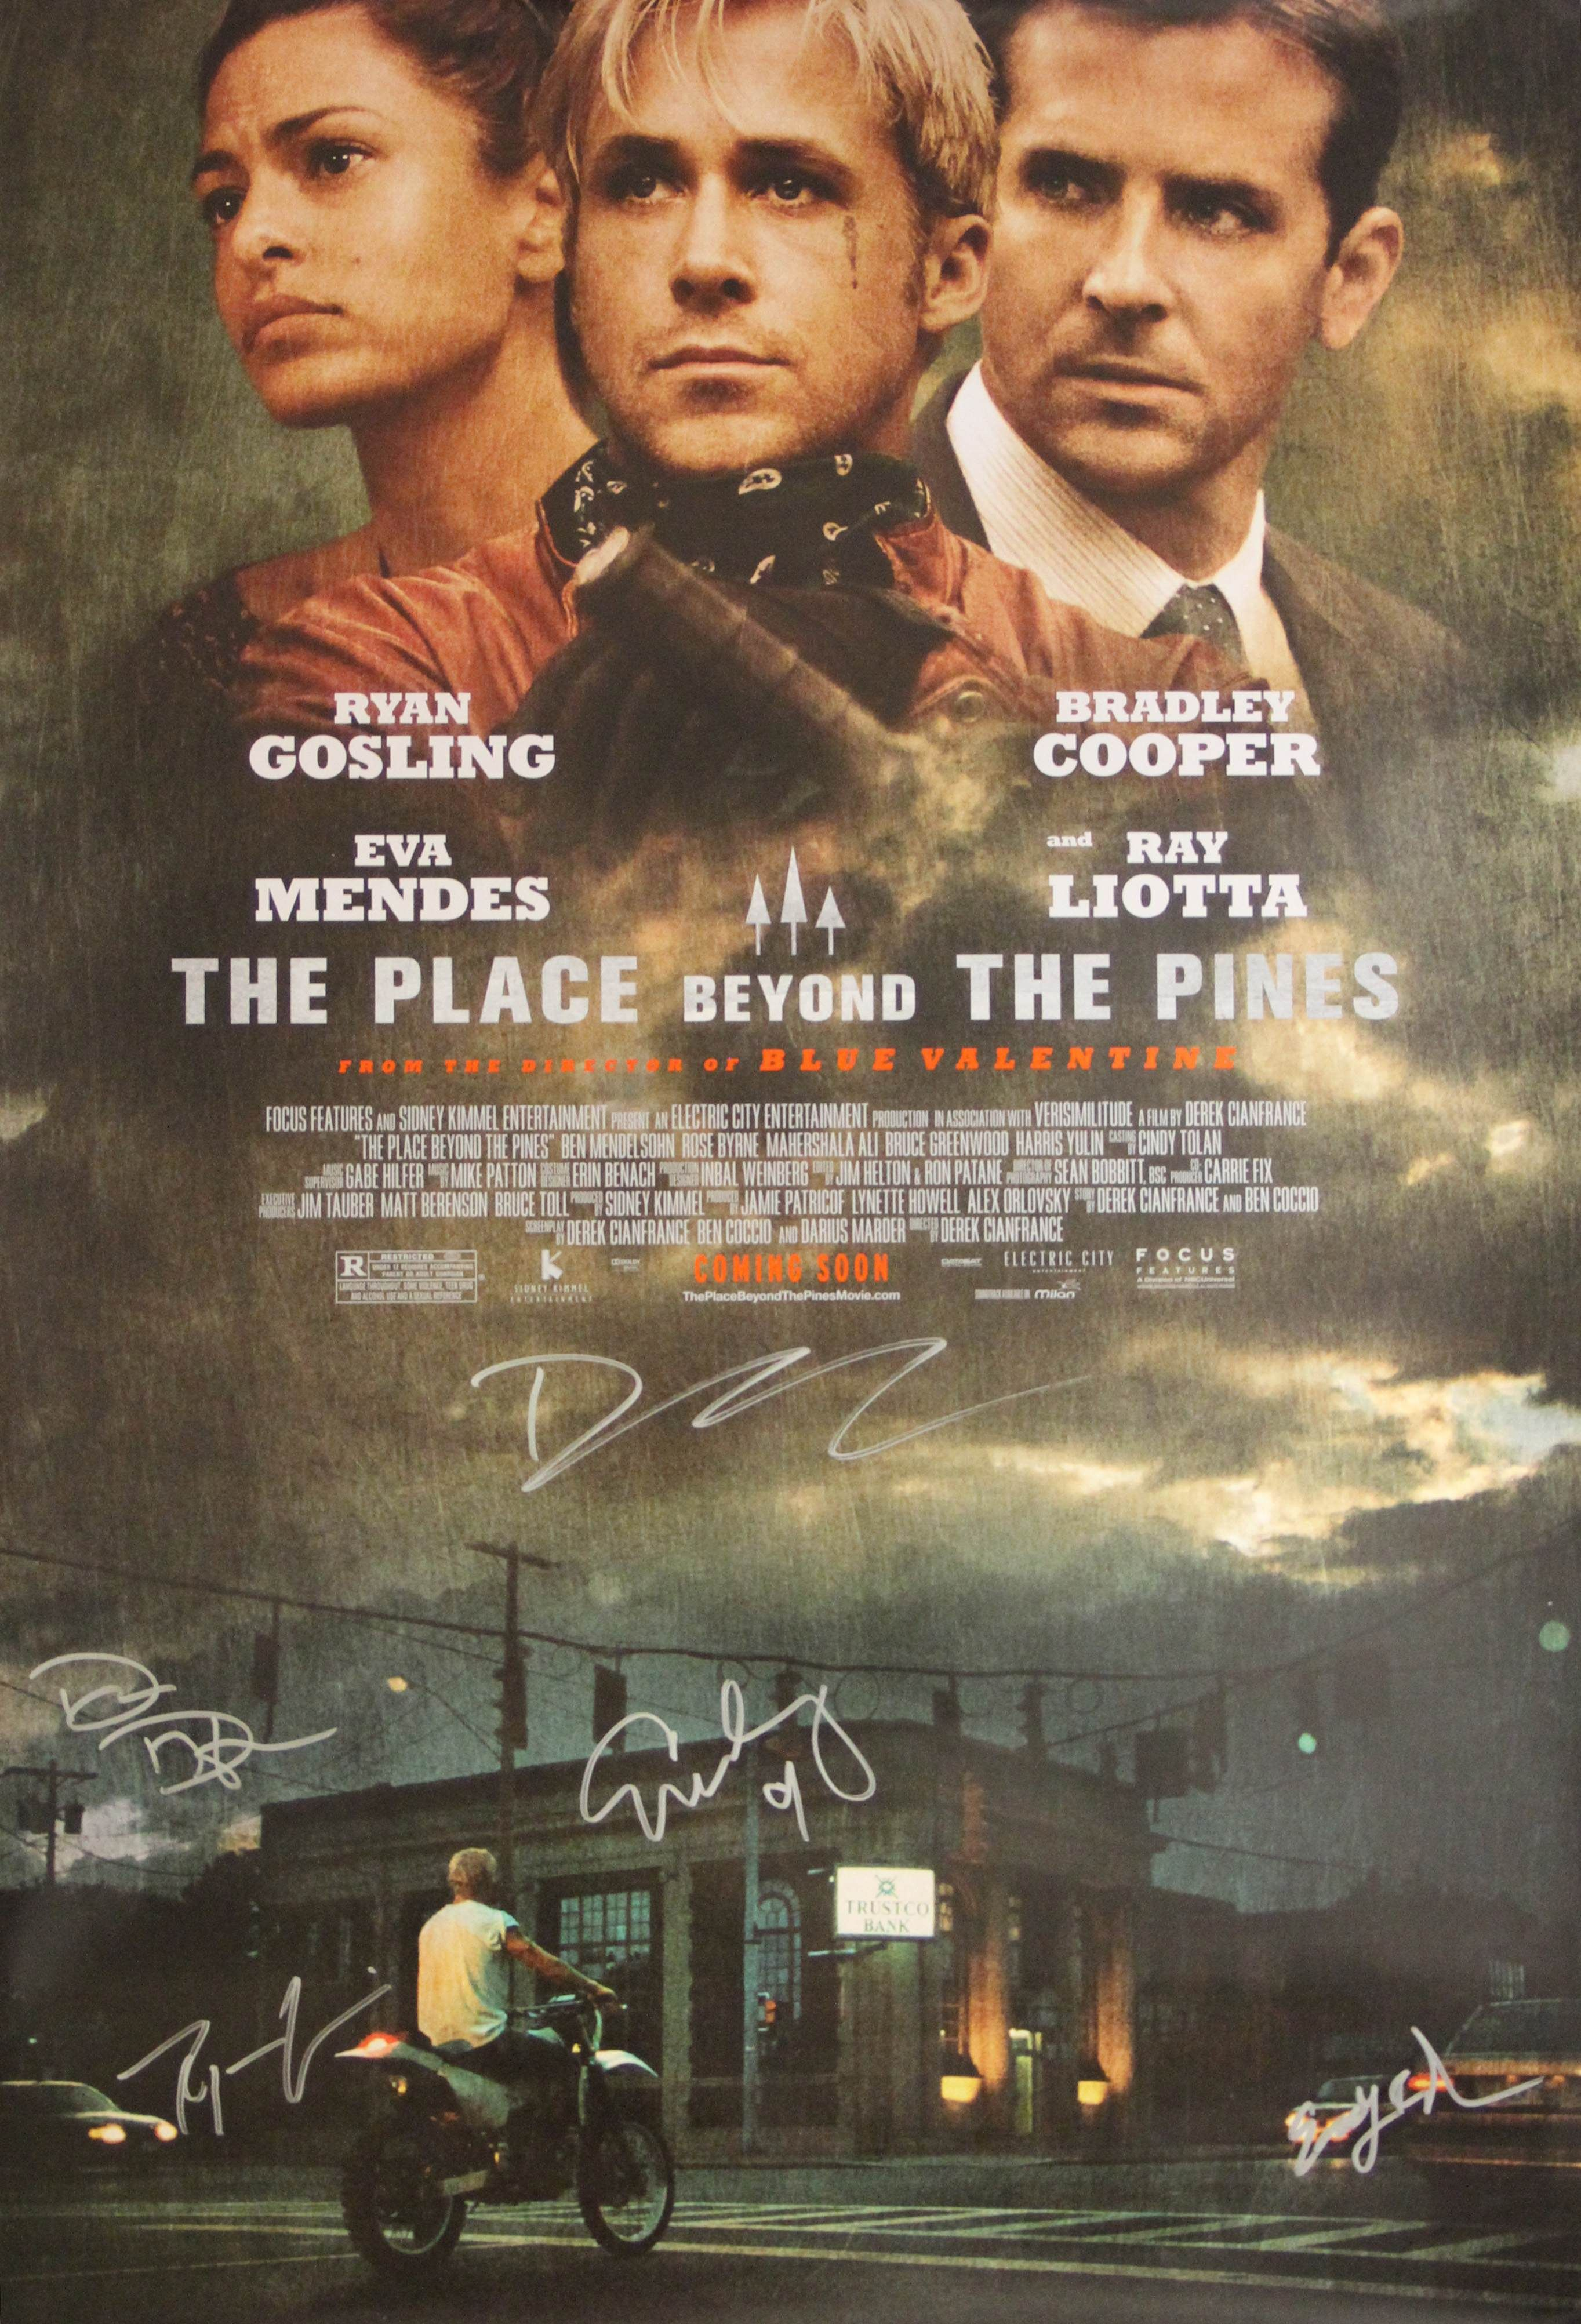 Win A Ryan Gosling Signed Poster From The Place Beyond The Pines